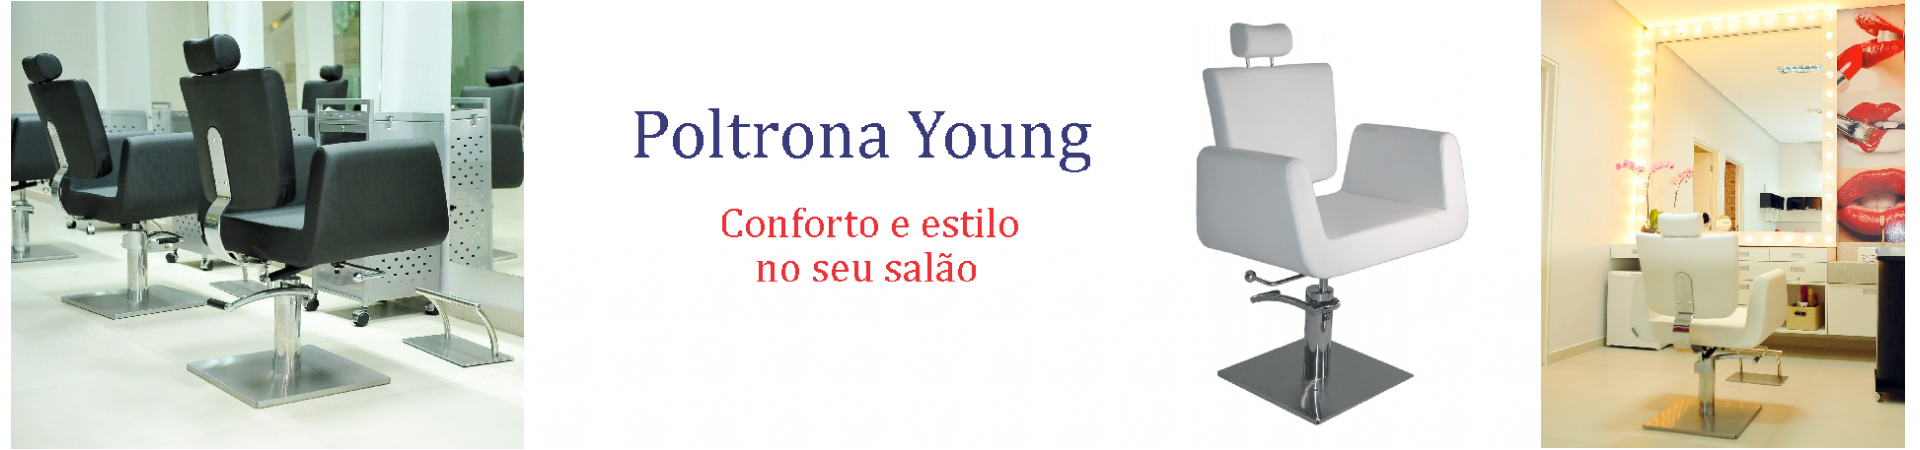 poltrona young